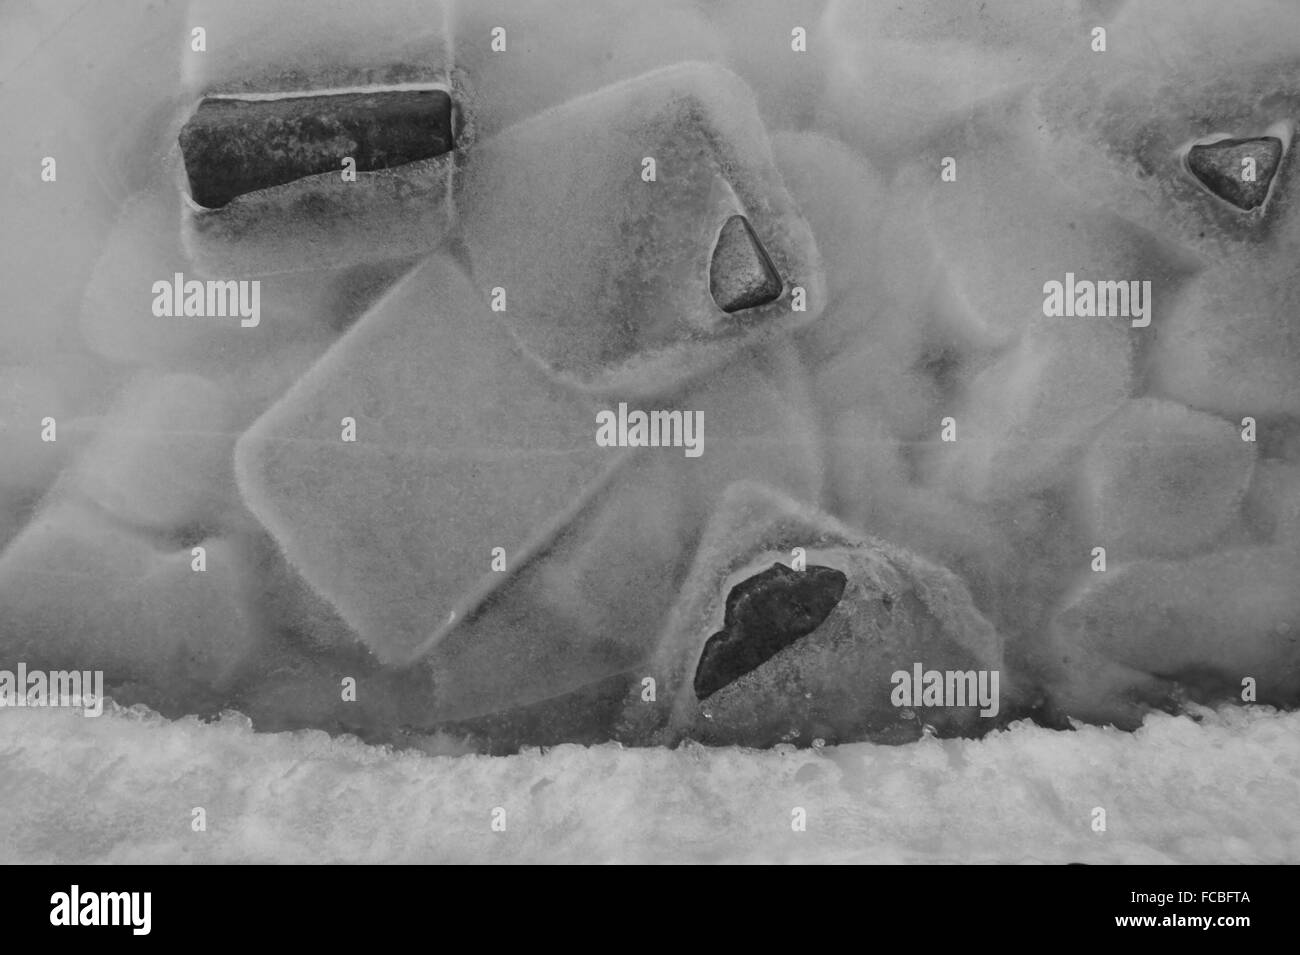 Close-Up Of Ice Cubes - Stock Image